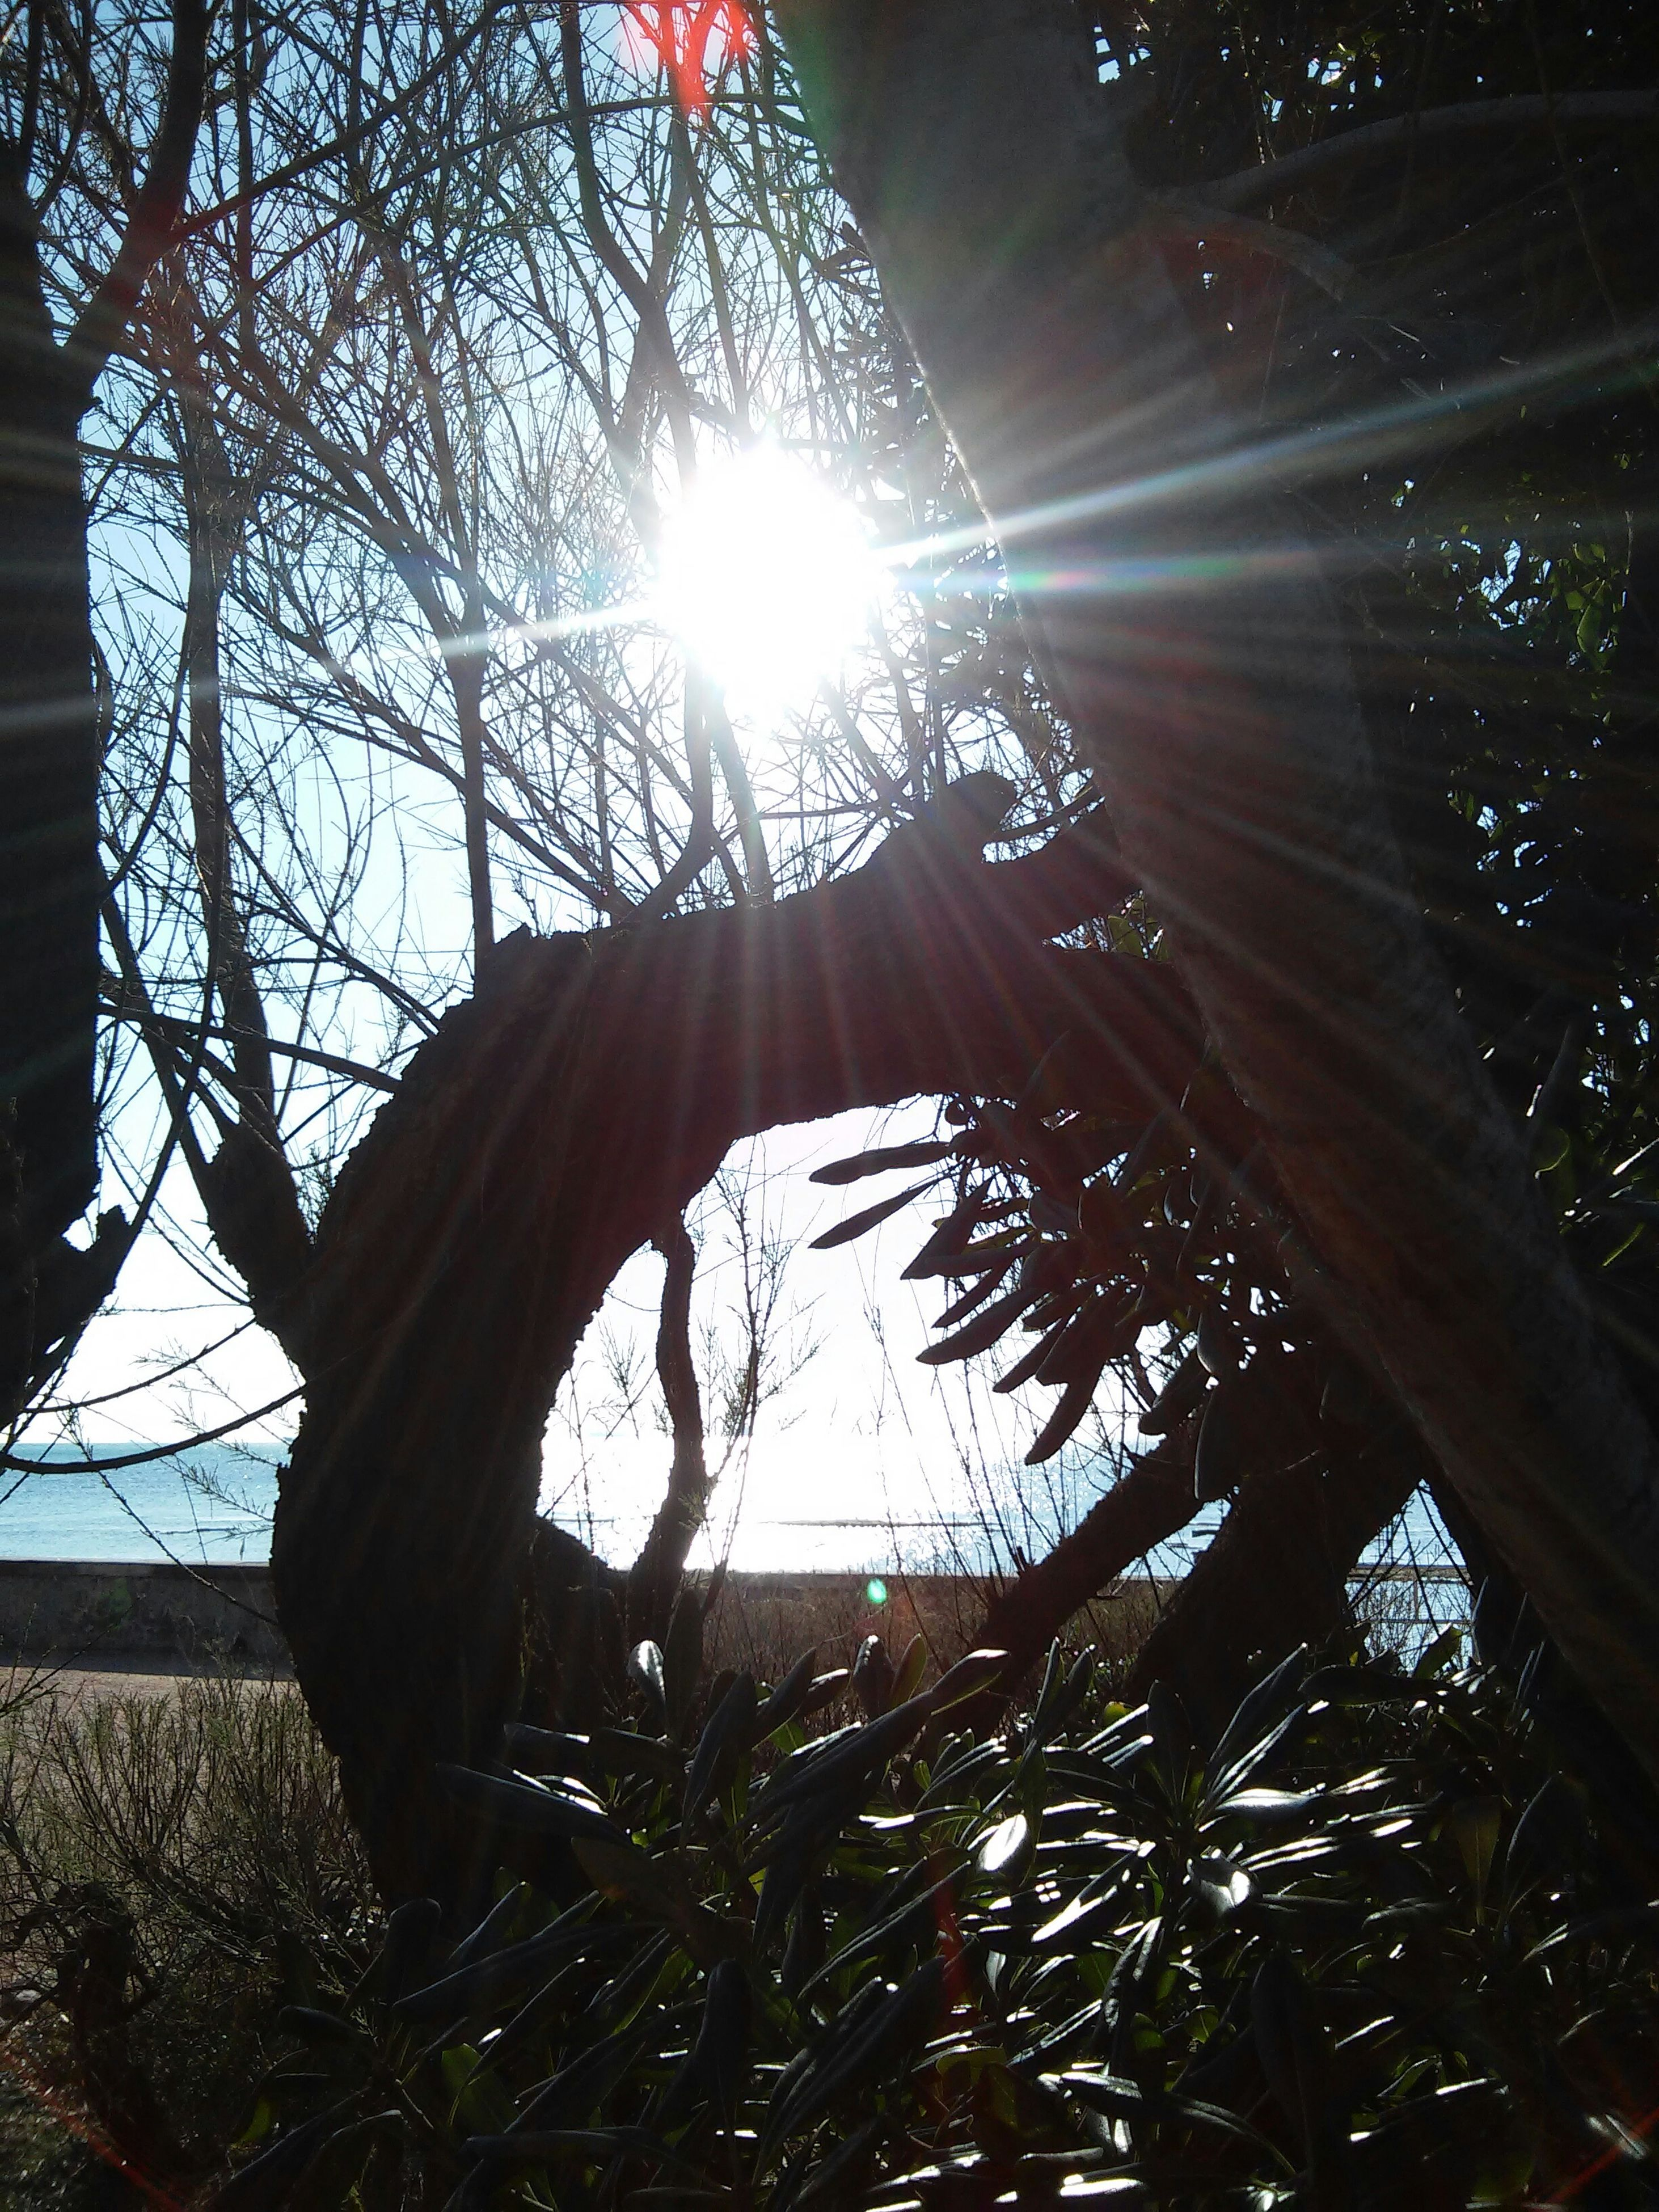 sun, tree, sunlight, sunbeam, lens flare, branch, nature, low angle view, tranquility, growth, bare tree, beauty in nature, sunny, bright, sky, day, outdoors, no people, back lit, tranquil scene